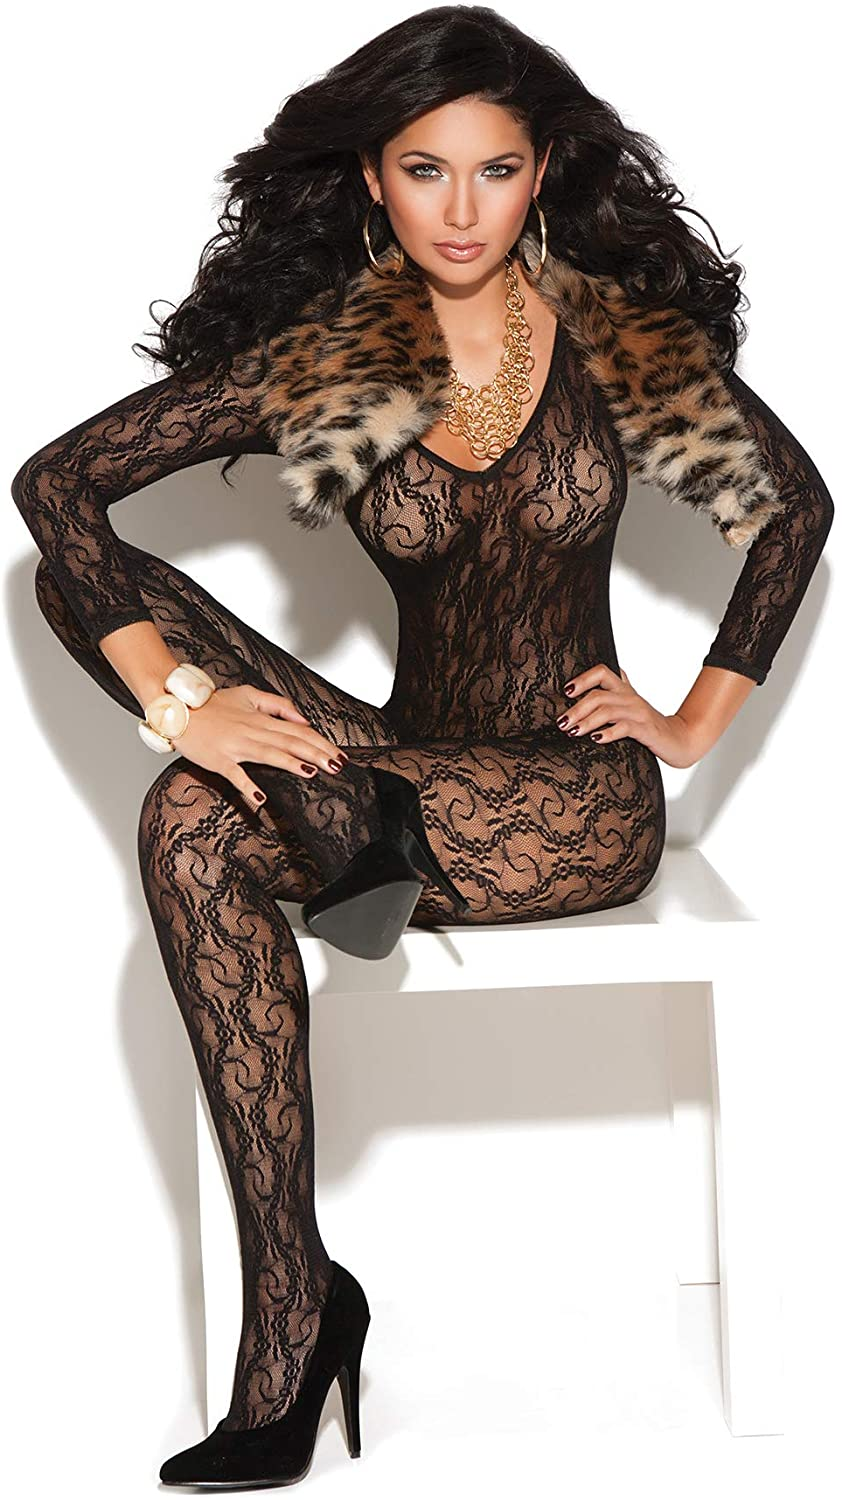 Zabeanco Long Sleeve Lace Bodystocking with Open Crotch